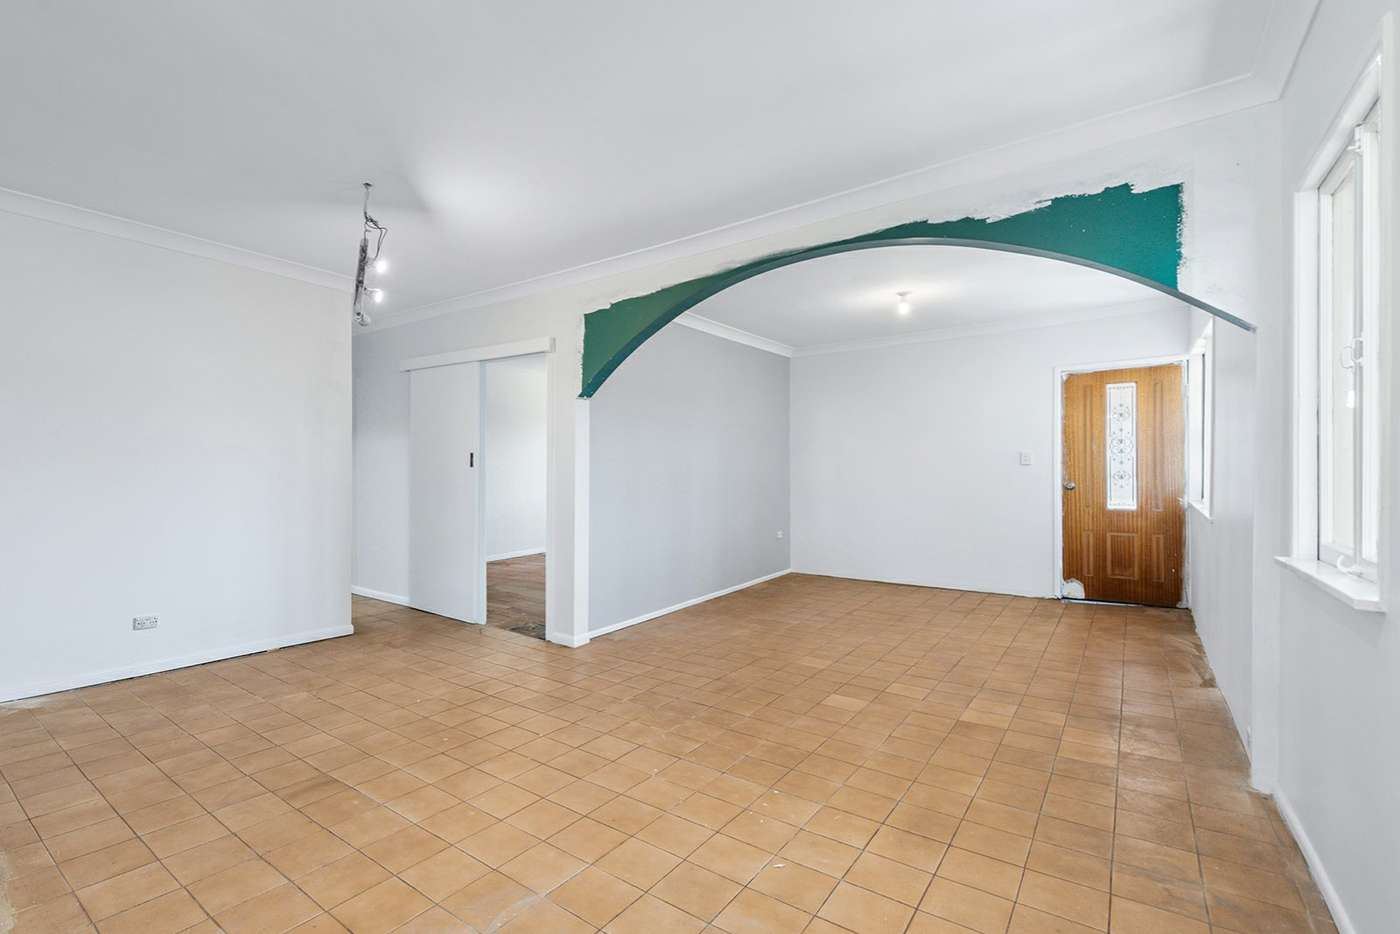 Sixth view of Homely house listing, 144 Granard Road, Archerfield QLD 4108